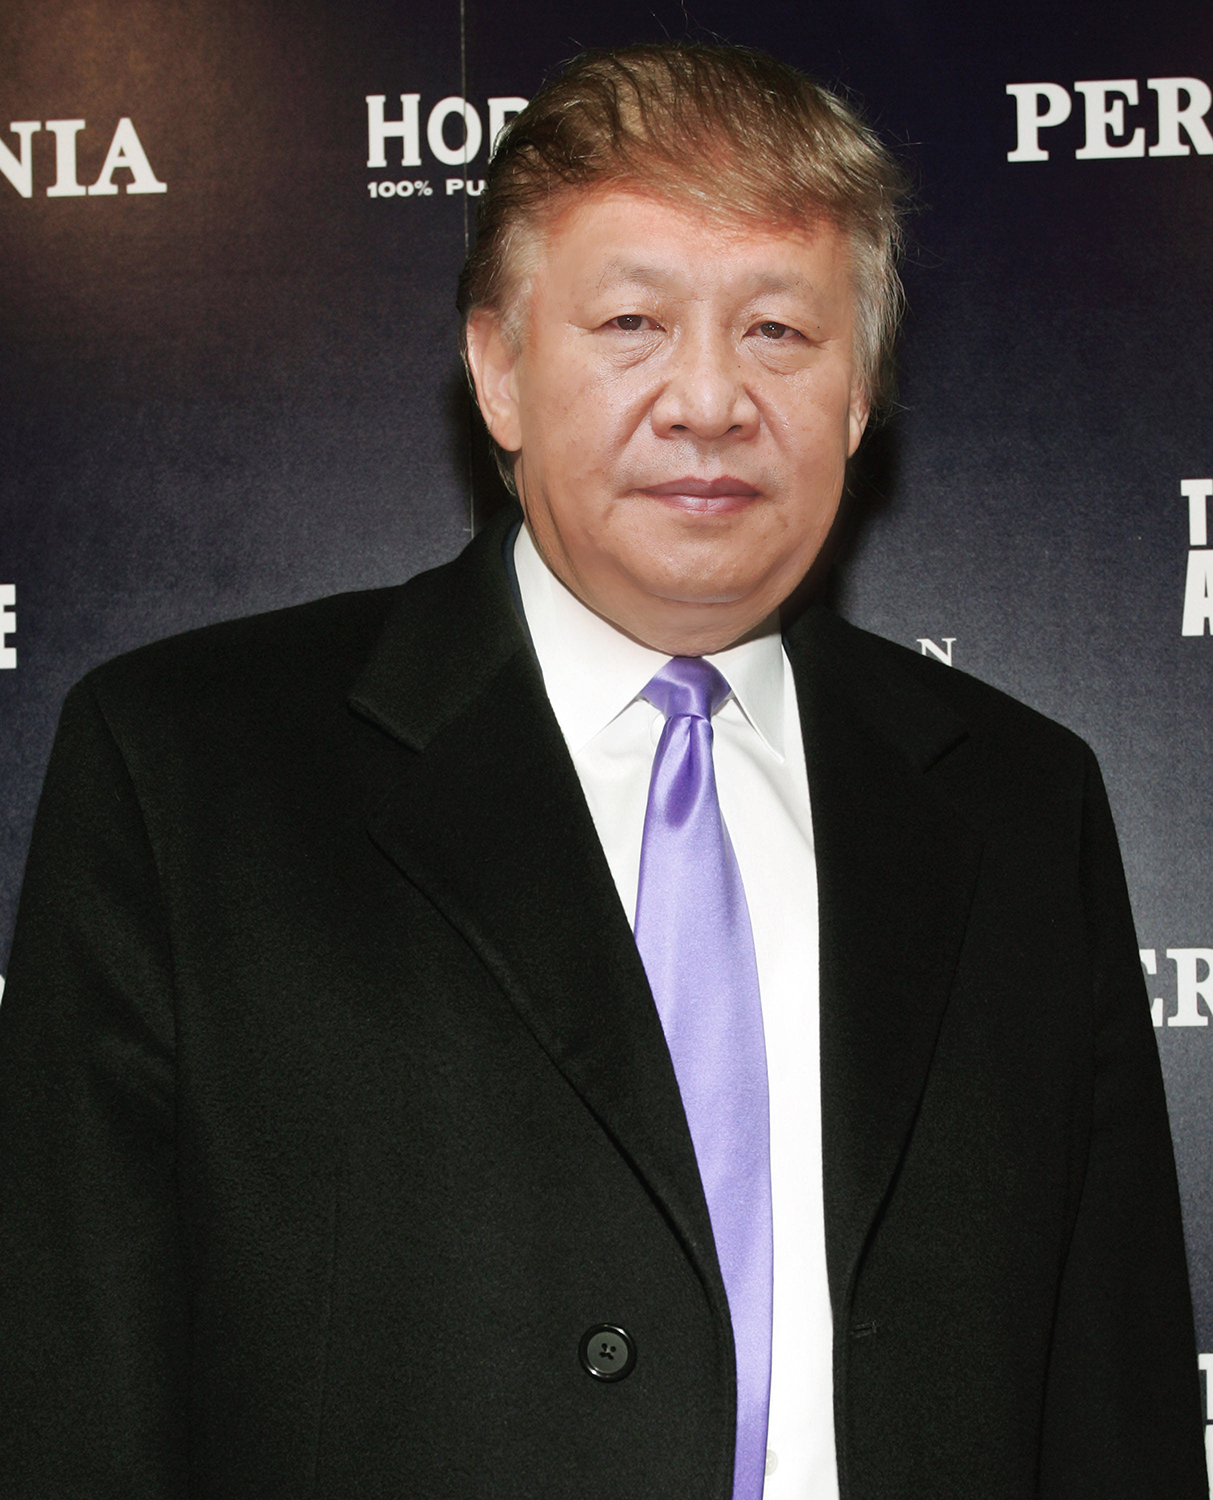 Politicians Made To Look Like Donald Trump Photoshop Design